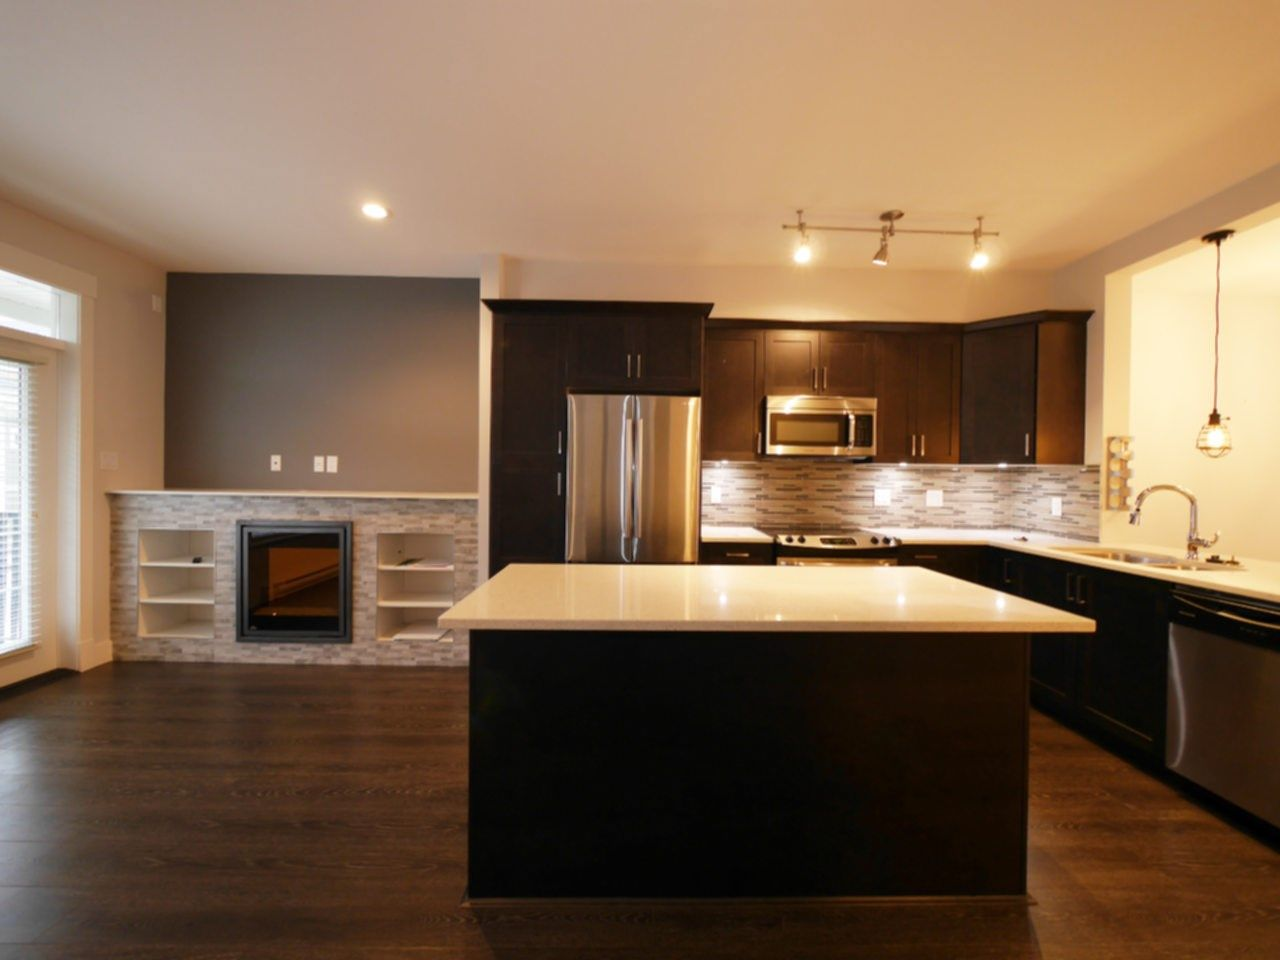 """Photo 2: Photos: 36 19525 73 Avenue in Surrey: Clayton Townhouse for sale in """"Uptown Clayton"""" (Cloverdale)  : MLS®# R2069814"""